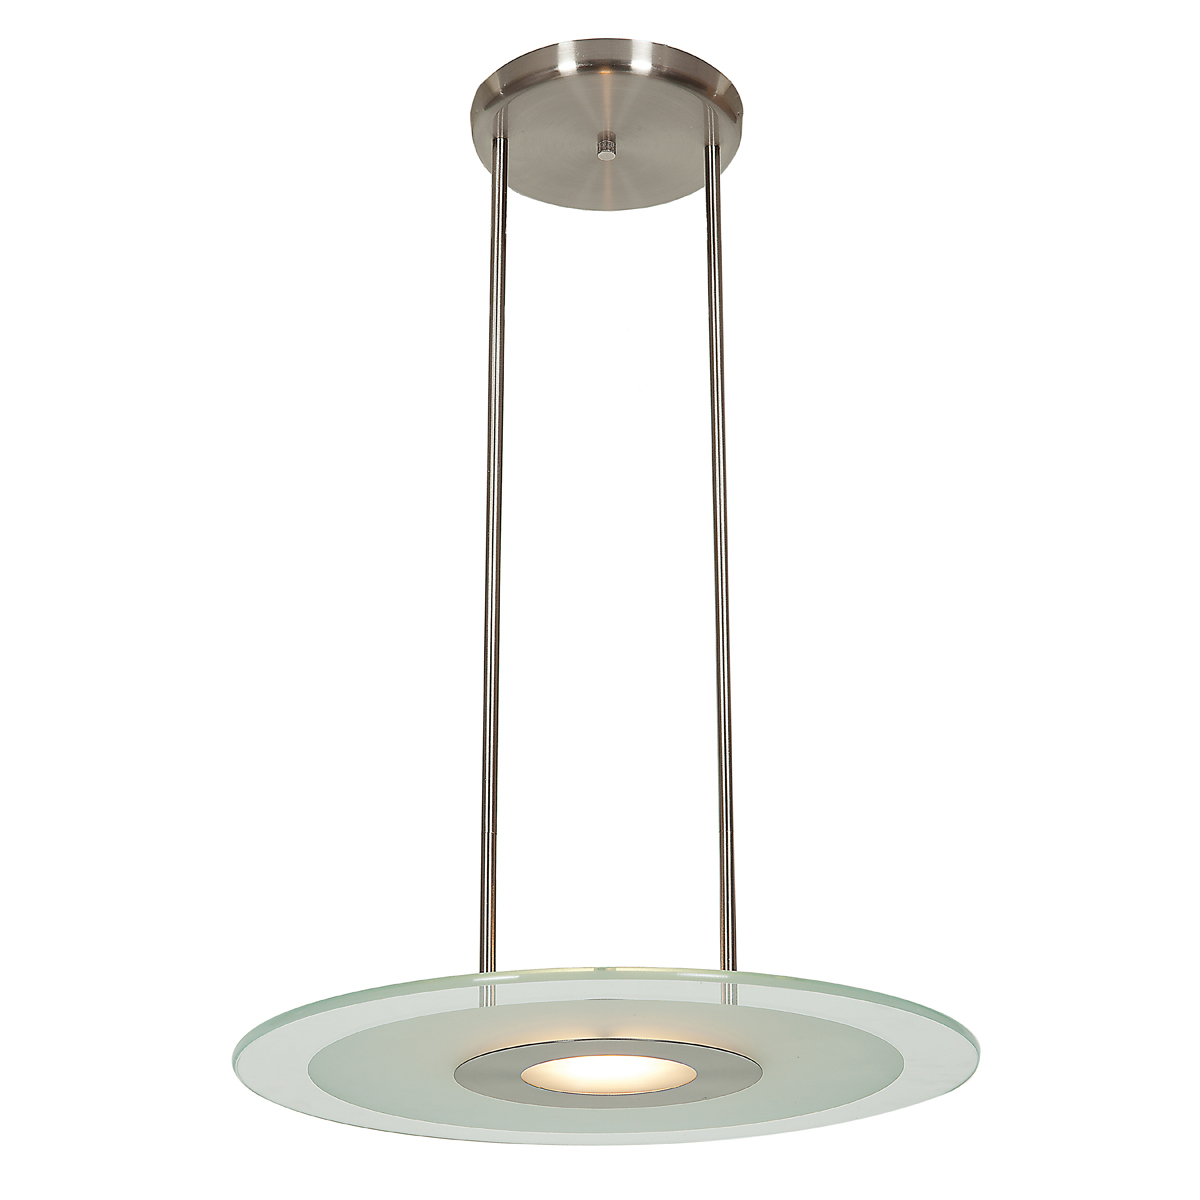 contemporary 2 helius lighting. contemporary 4 helius lighting access 50484 20 inch pendant shown in brushed steel 2